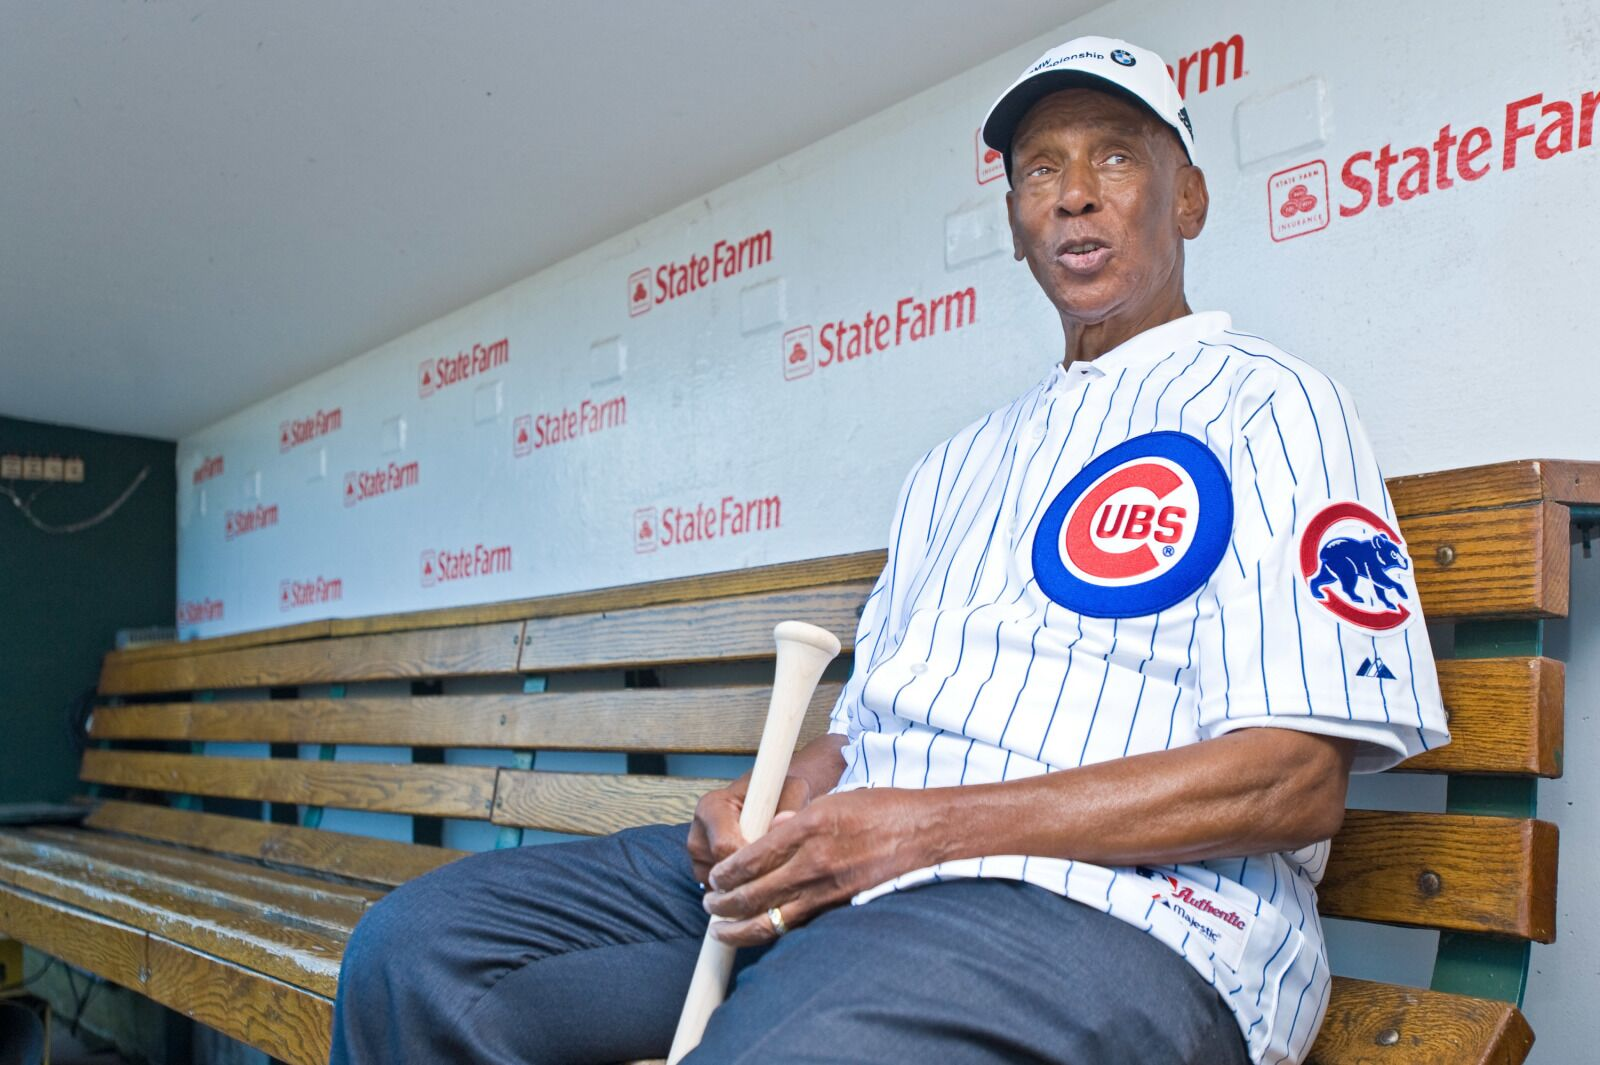 Chicago Cubs: Ernie Banks made his debut 66 years ago